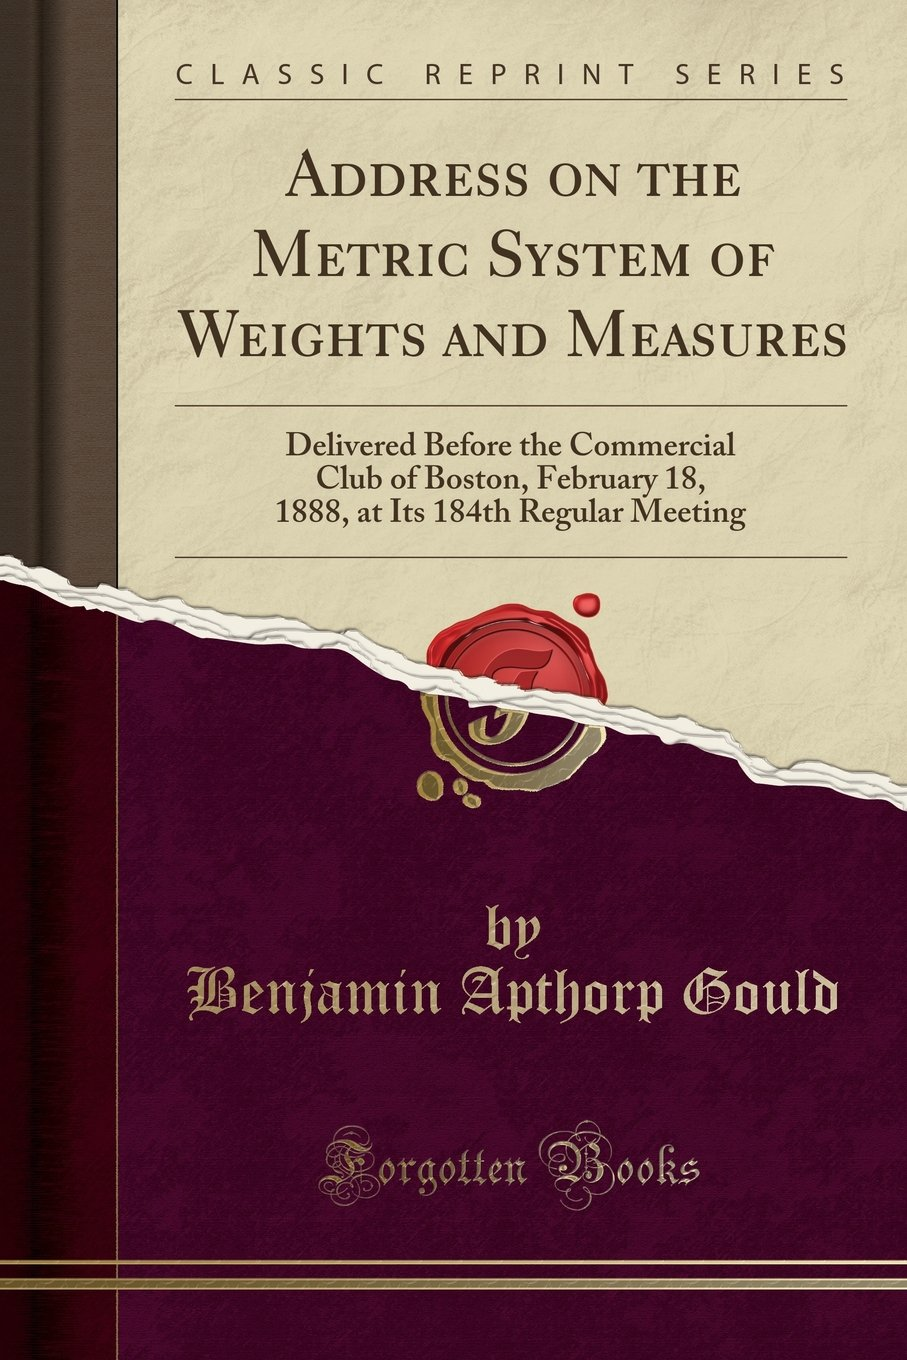 Address on the Metric System of Weights and Measures: Delivered Before the Commercial Club of Boston, February 18, 1888, at Its 184th Regular Meeting (Classic Reprint) ebook